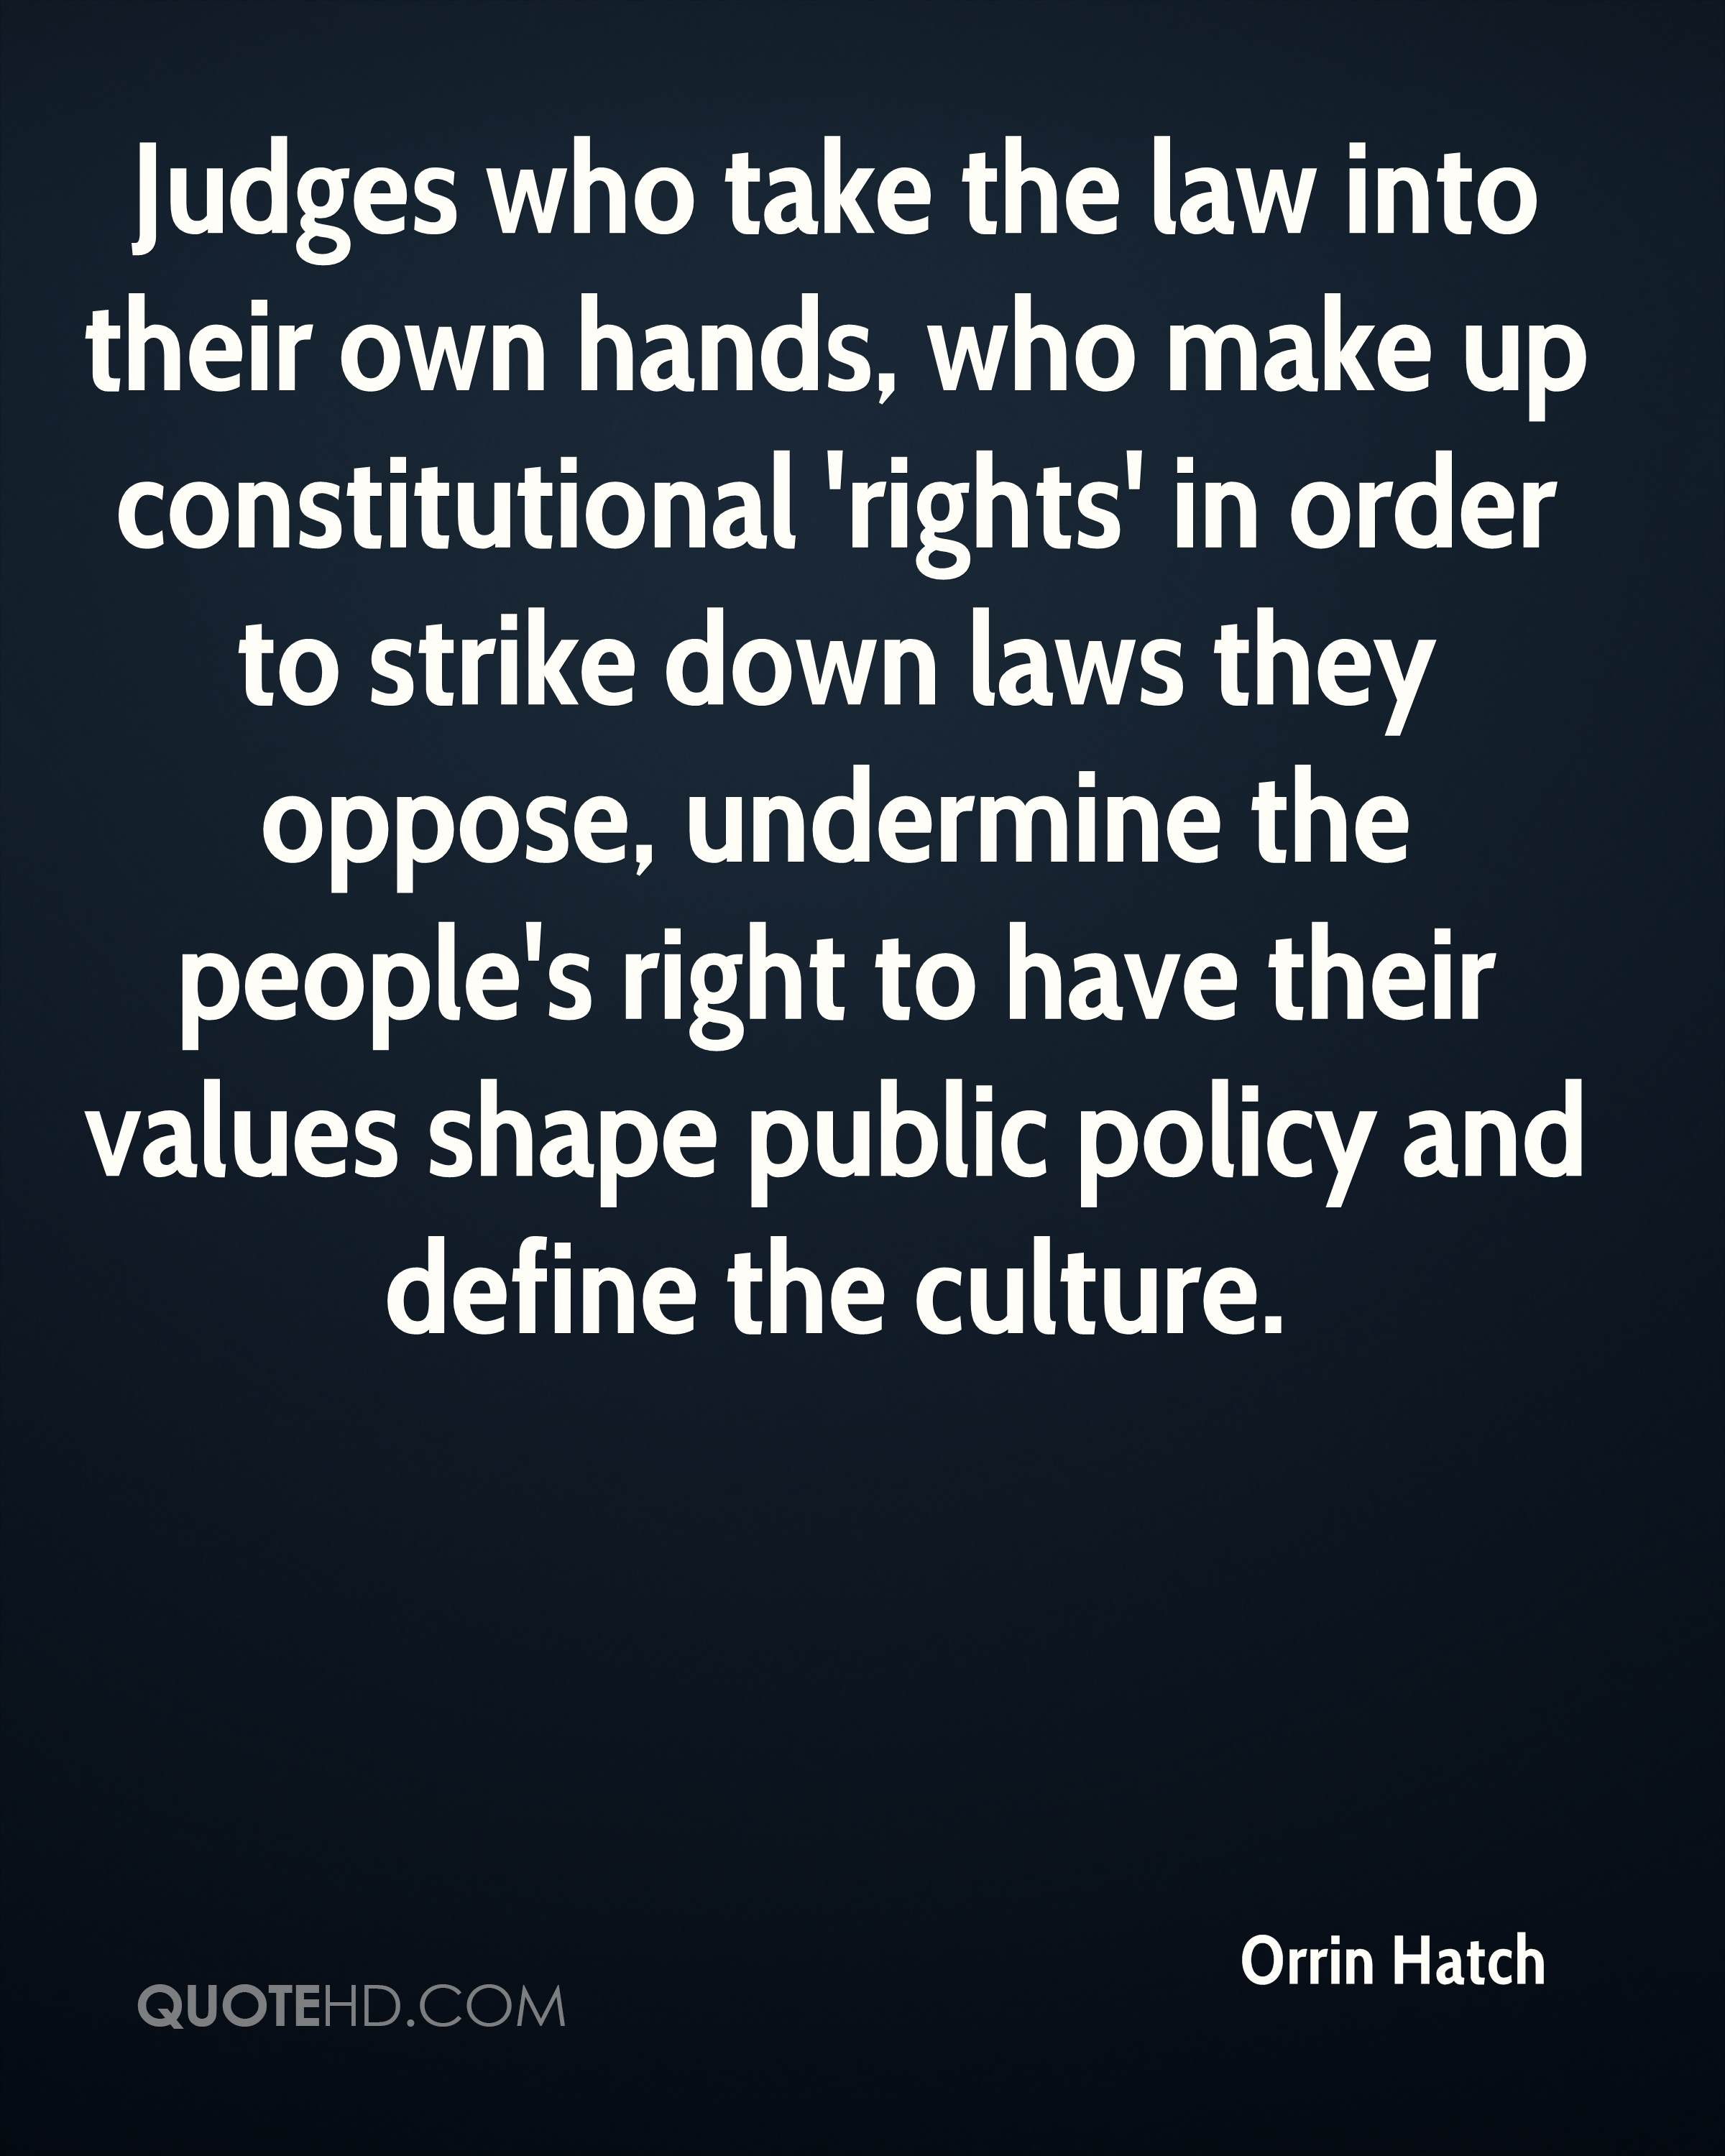 Judges who take the law into their own hands, who make up constitutional 'rights' in order to strike down laws they oppose, undermine the people's right to have their values shape public policy and define the culture.